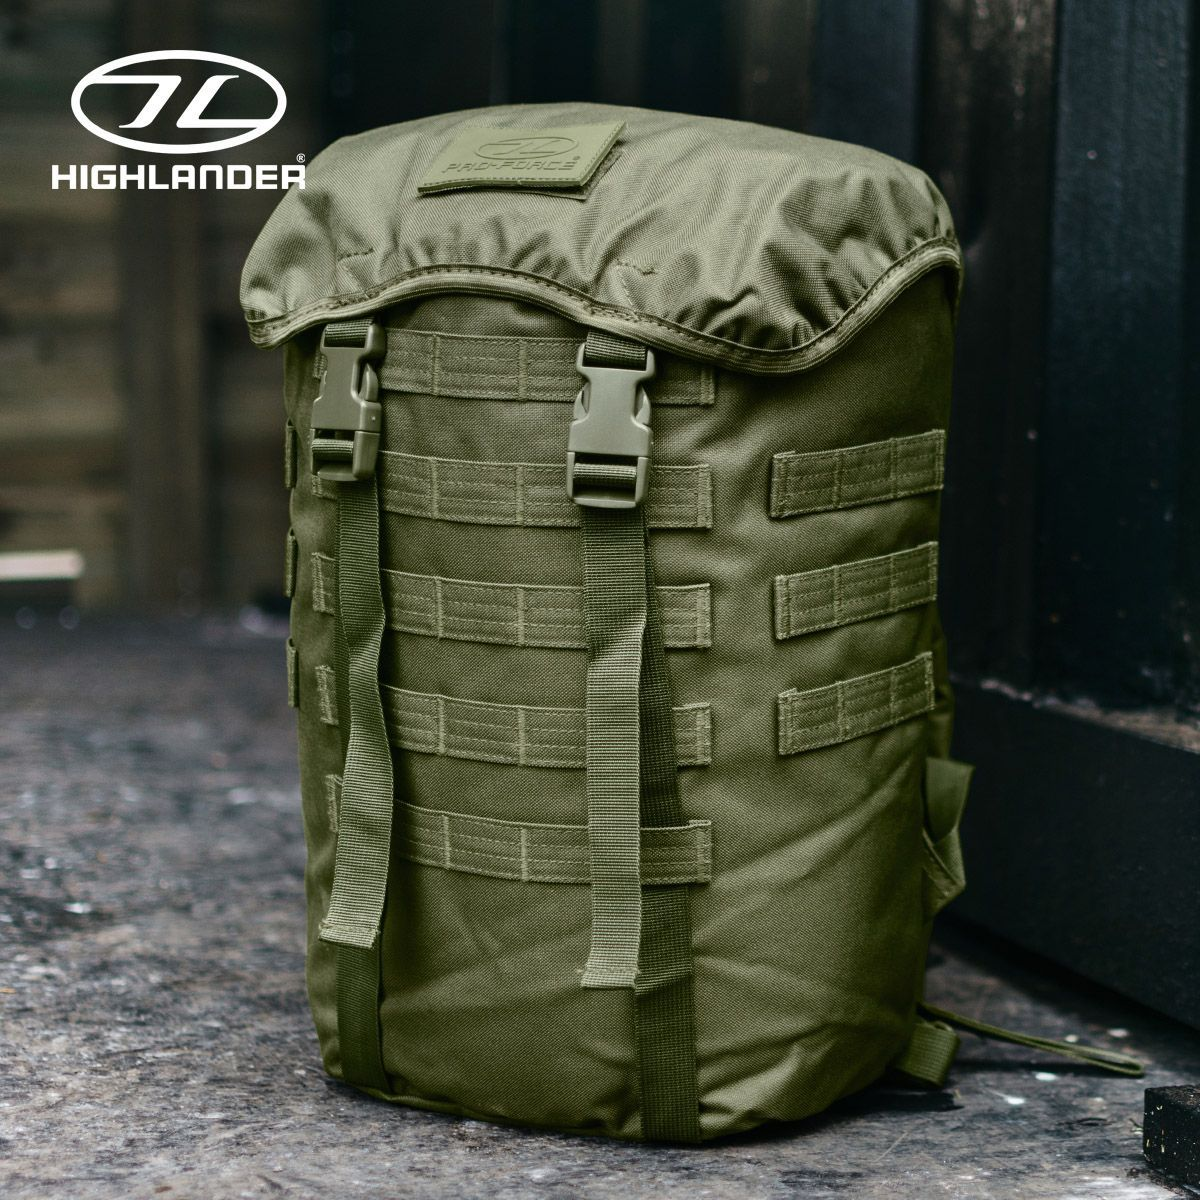 NEW Highlander Military Army Skirmish Pack Hiking Camping Hunting Essentials